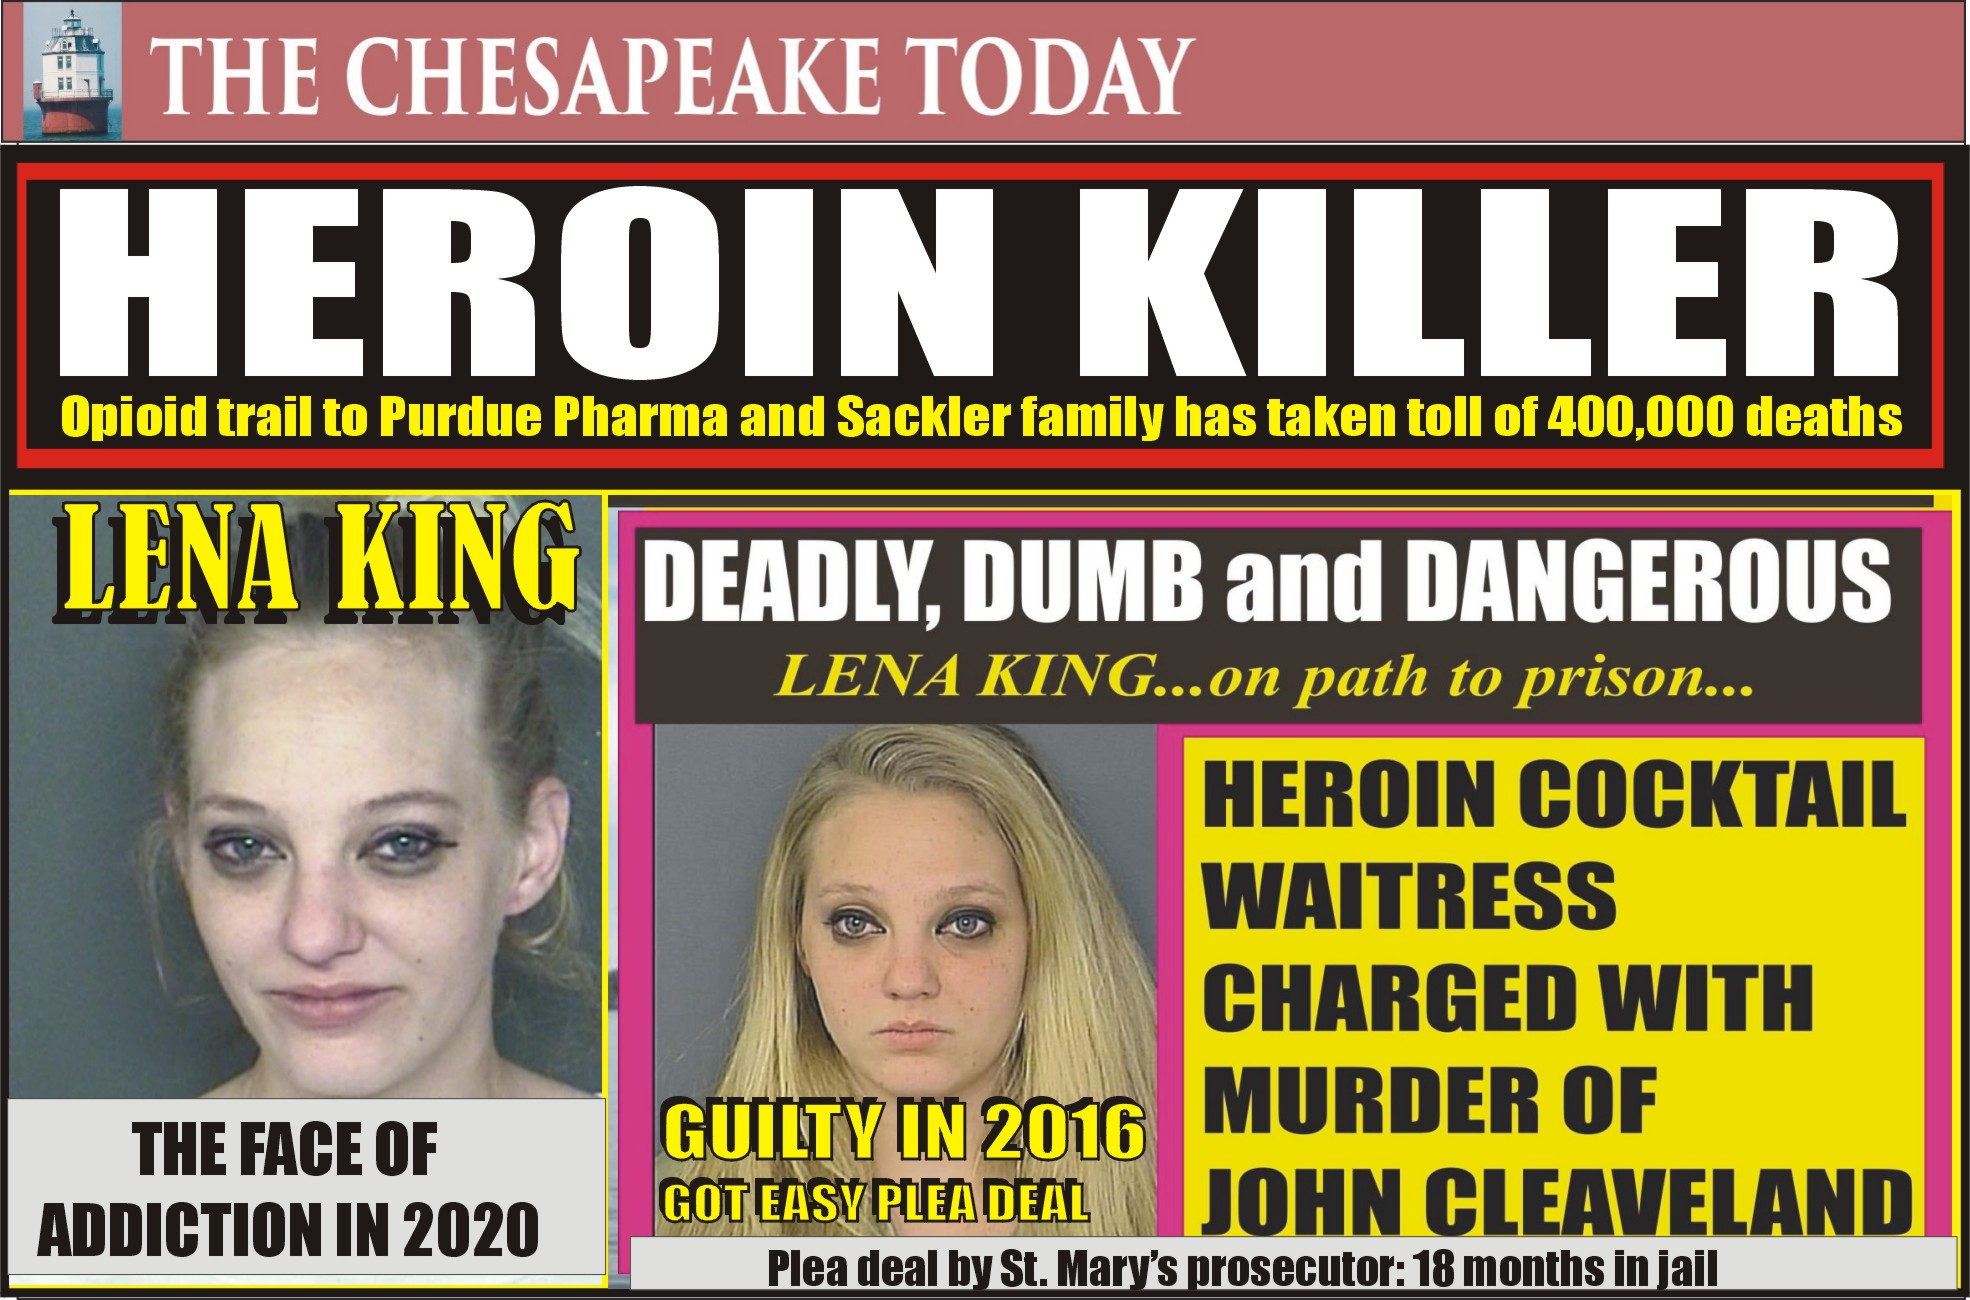 HEROIN COCKTAIL WAITRESS LENA KING KILLED ONCE, SIX YEARS LATER IS BACK IN THE SLAMMER FOR HEROIN